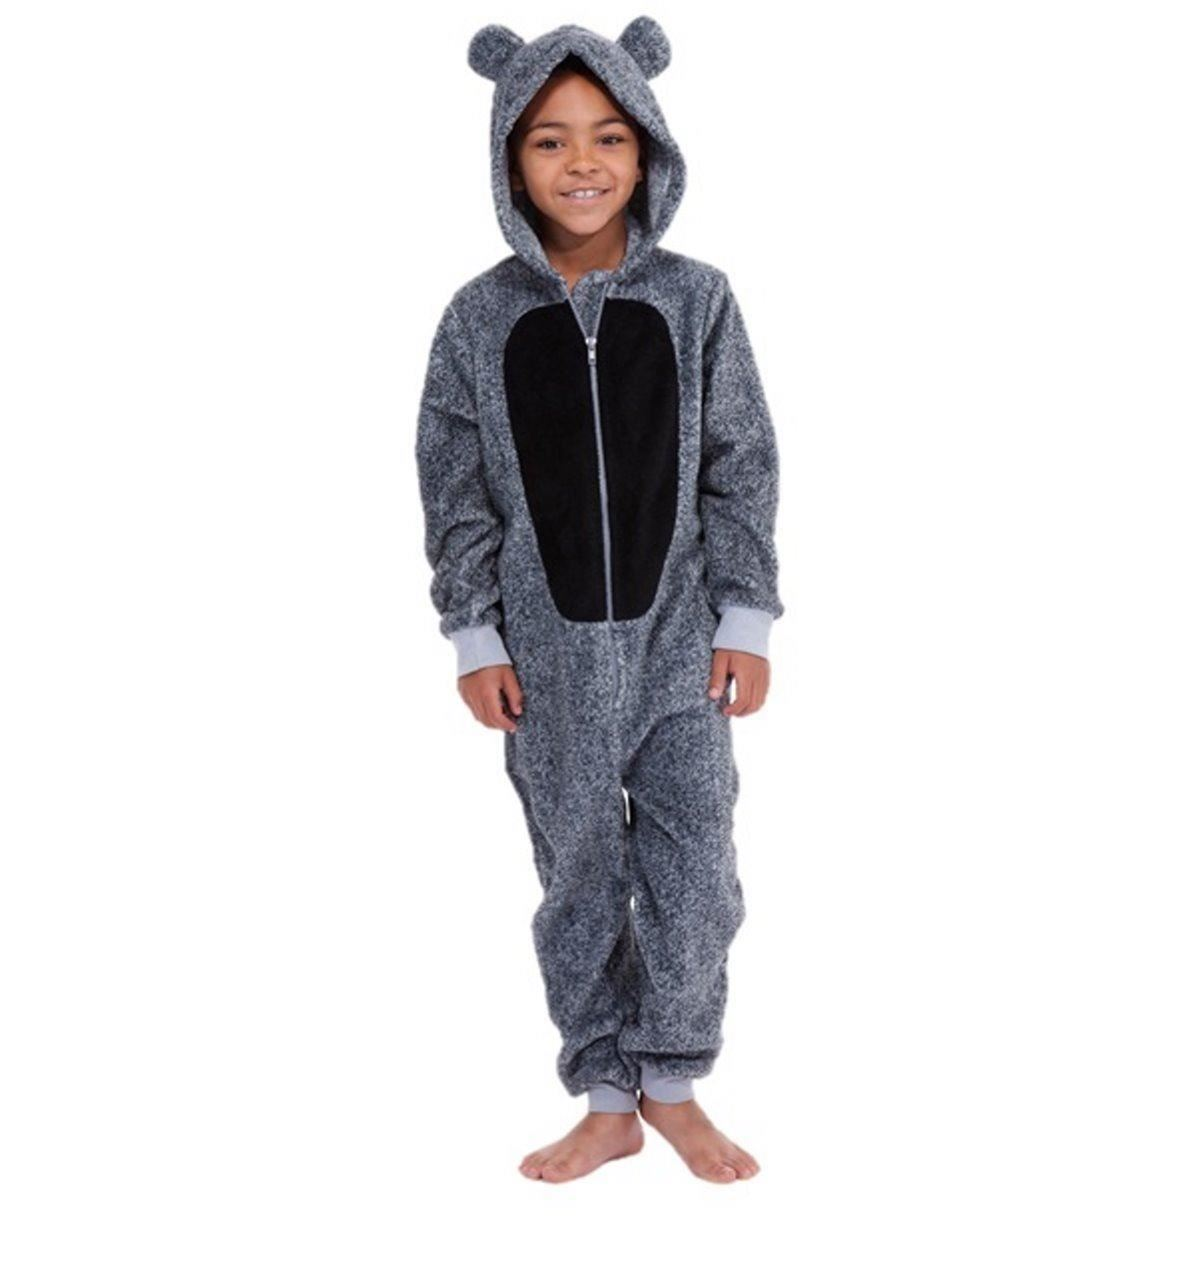 Children's microfleece, polar fleece or coral fleece onesie with a printed design/transfer print. The all in one has a hood, zip up front and ribbed cuffs and ankles. 13 Years (to fit height cm).